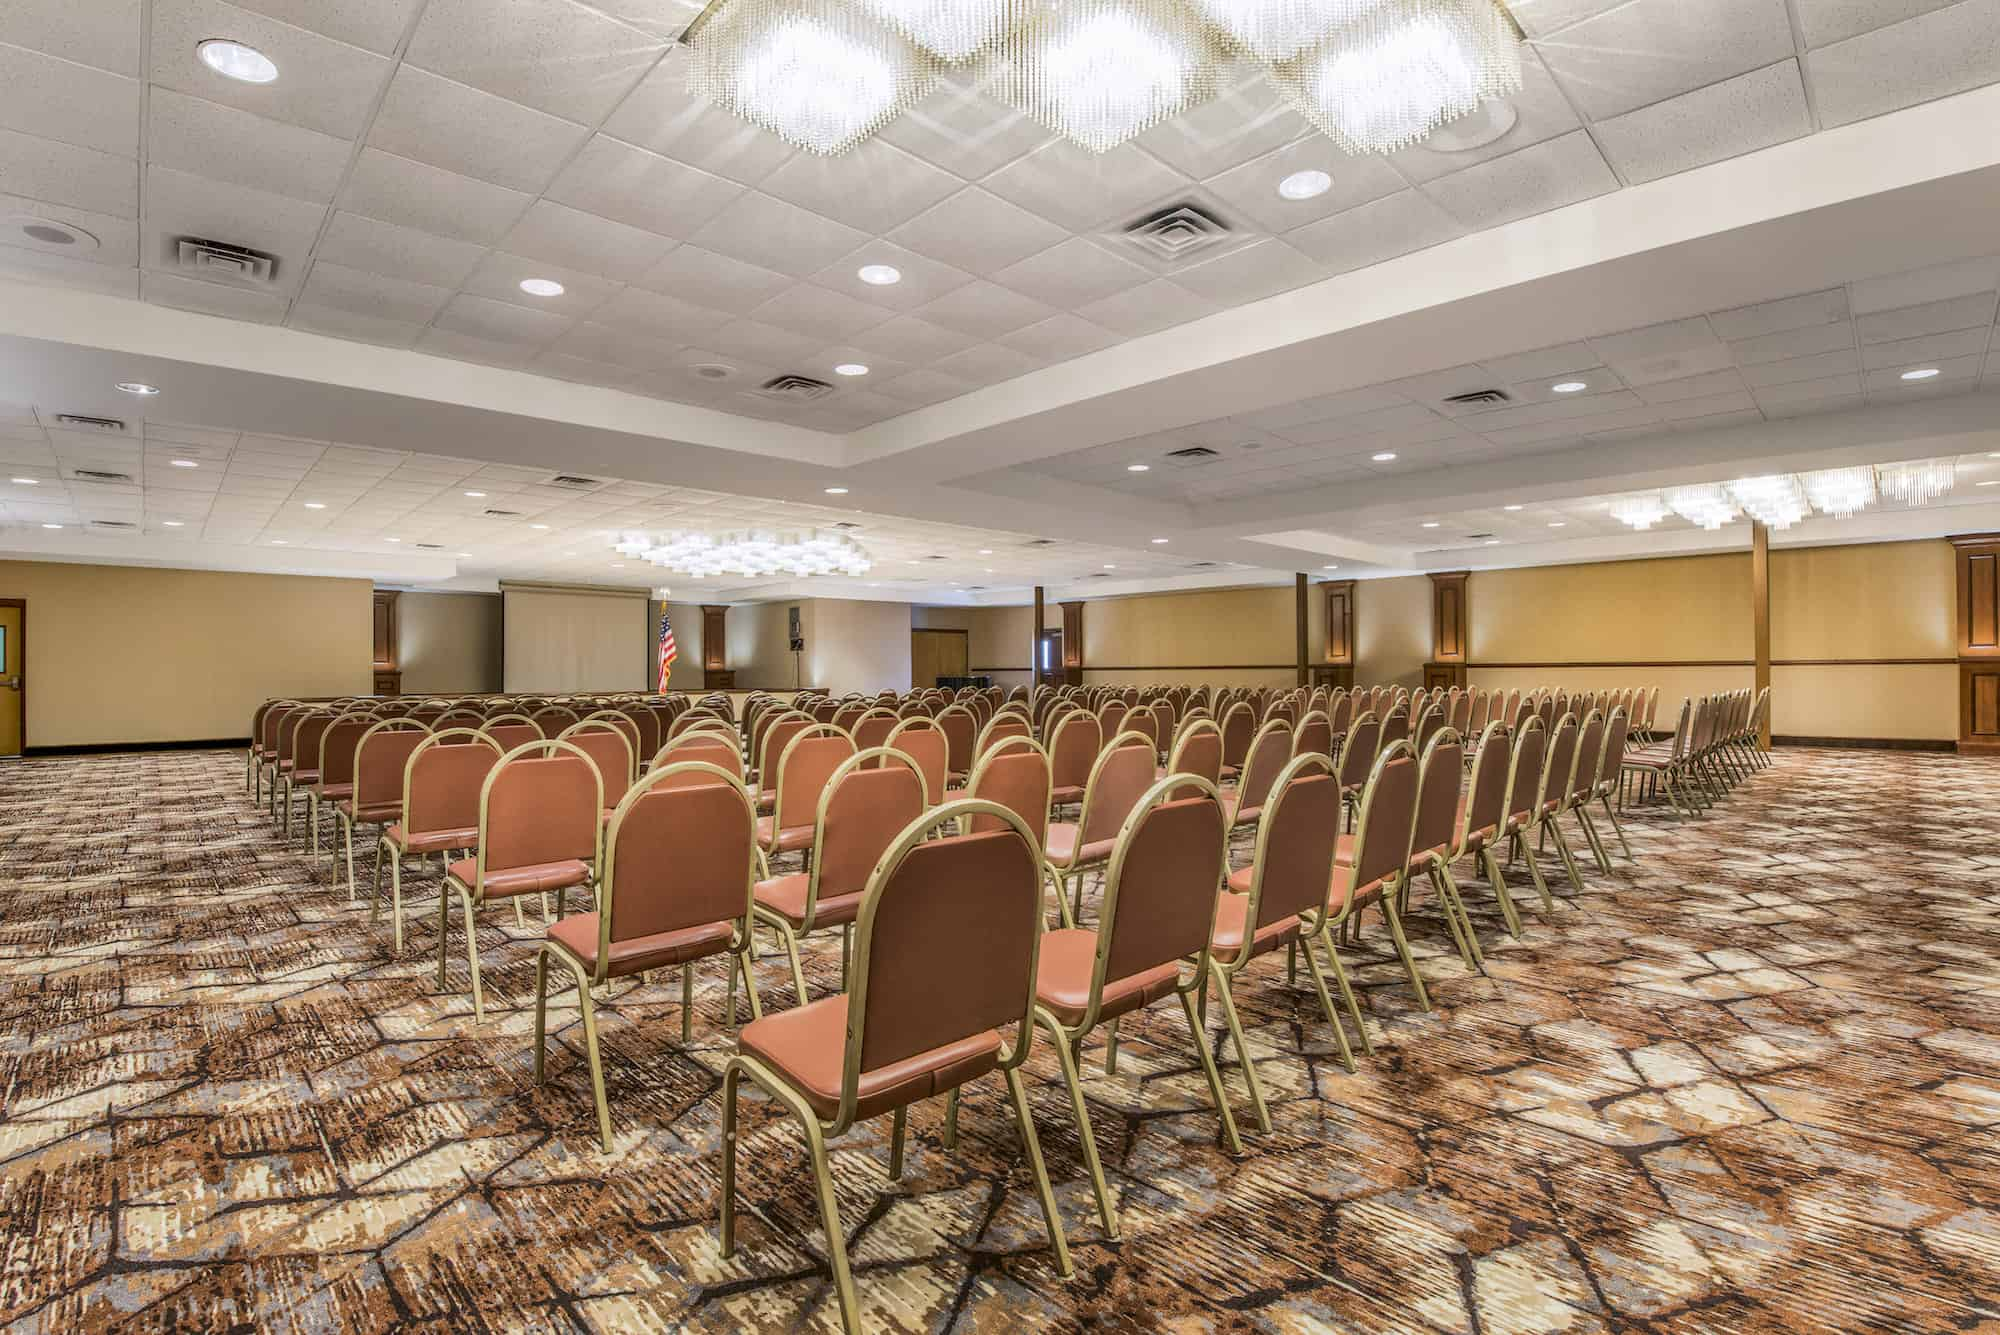 Large conference room with rows a chairs